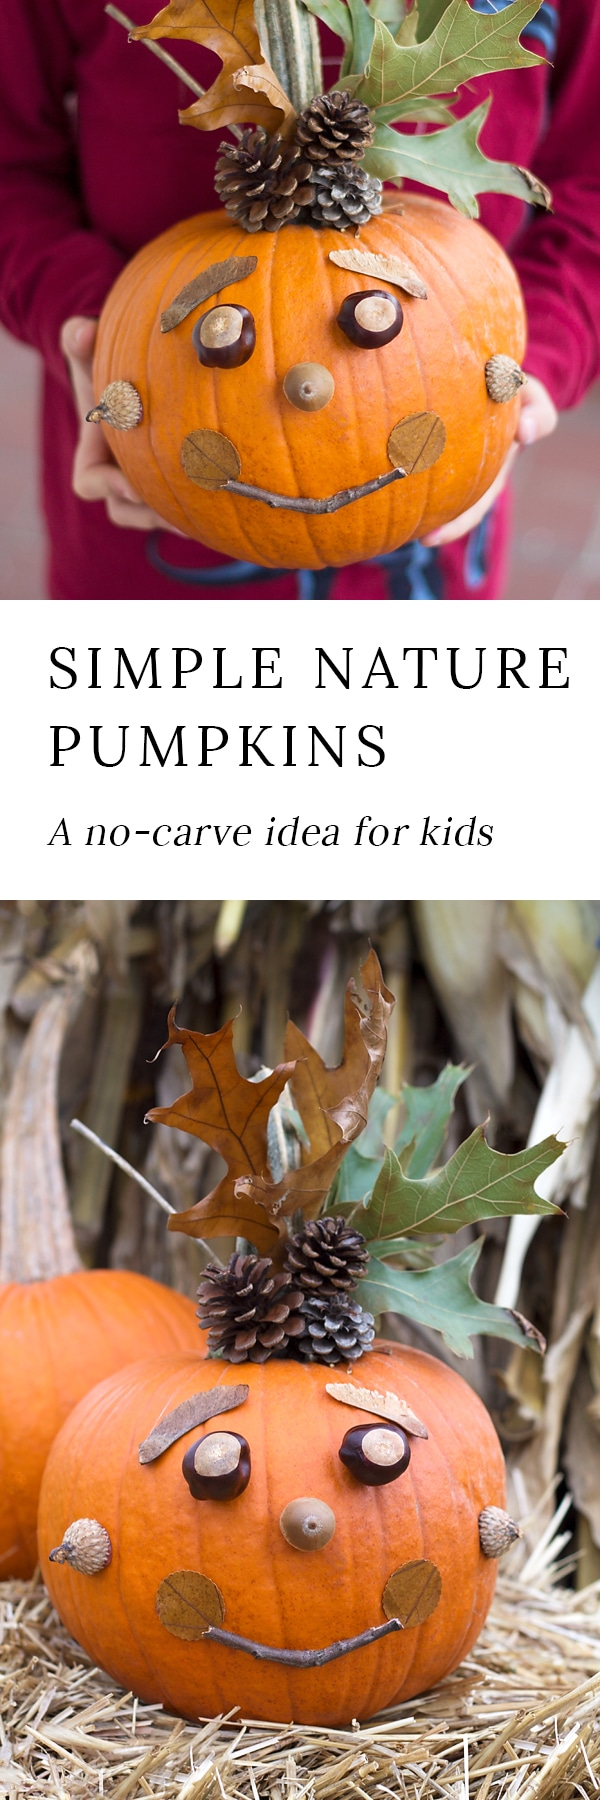 Kids will love creating a whimsical No-Carve Nature Pumpkin with pinecones, nuts, seeds, leaves, and twigs. Perfect autumn fun for families!